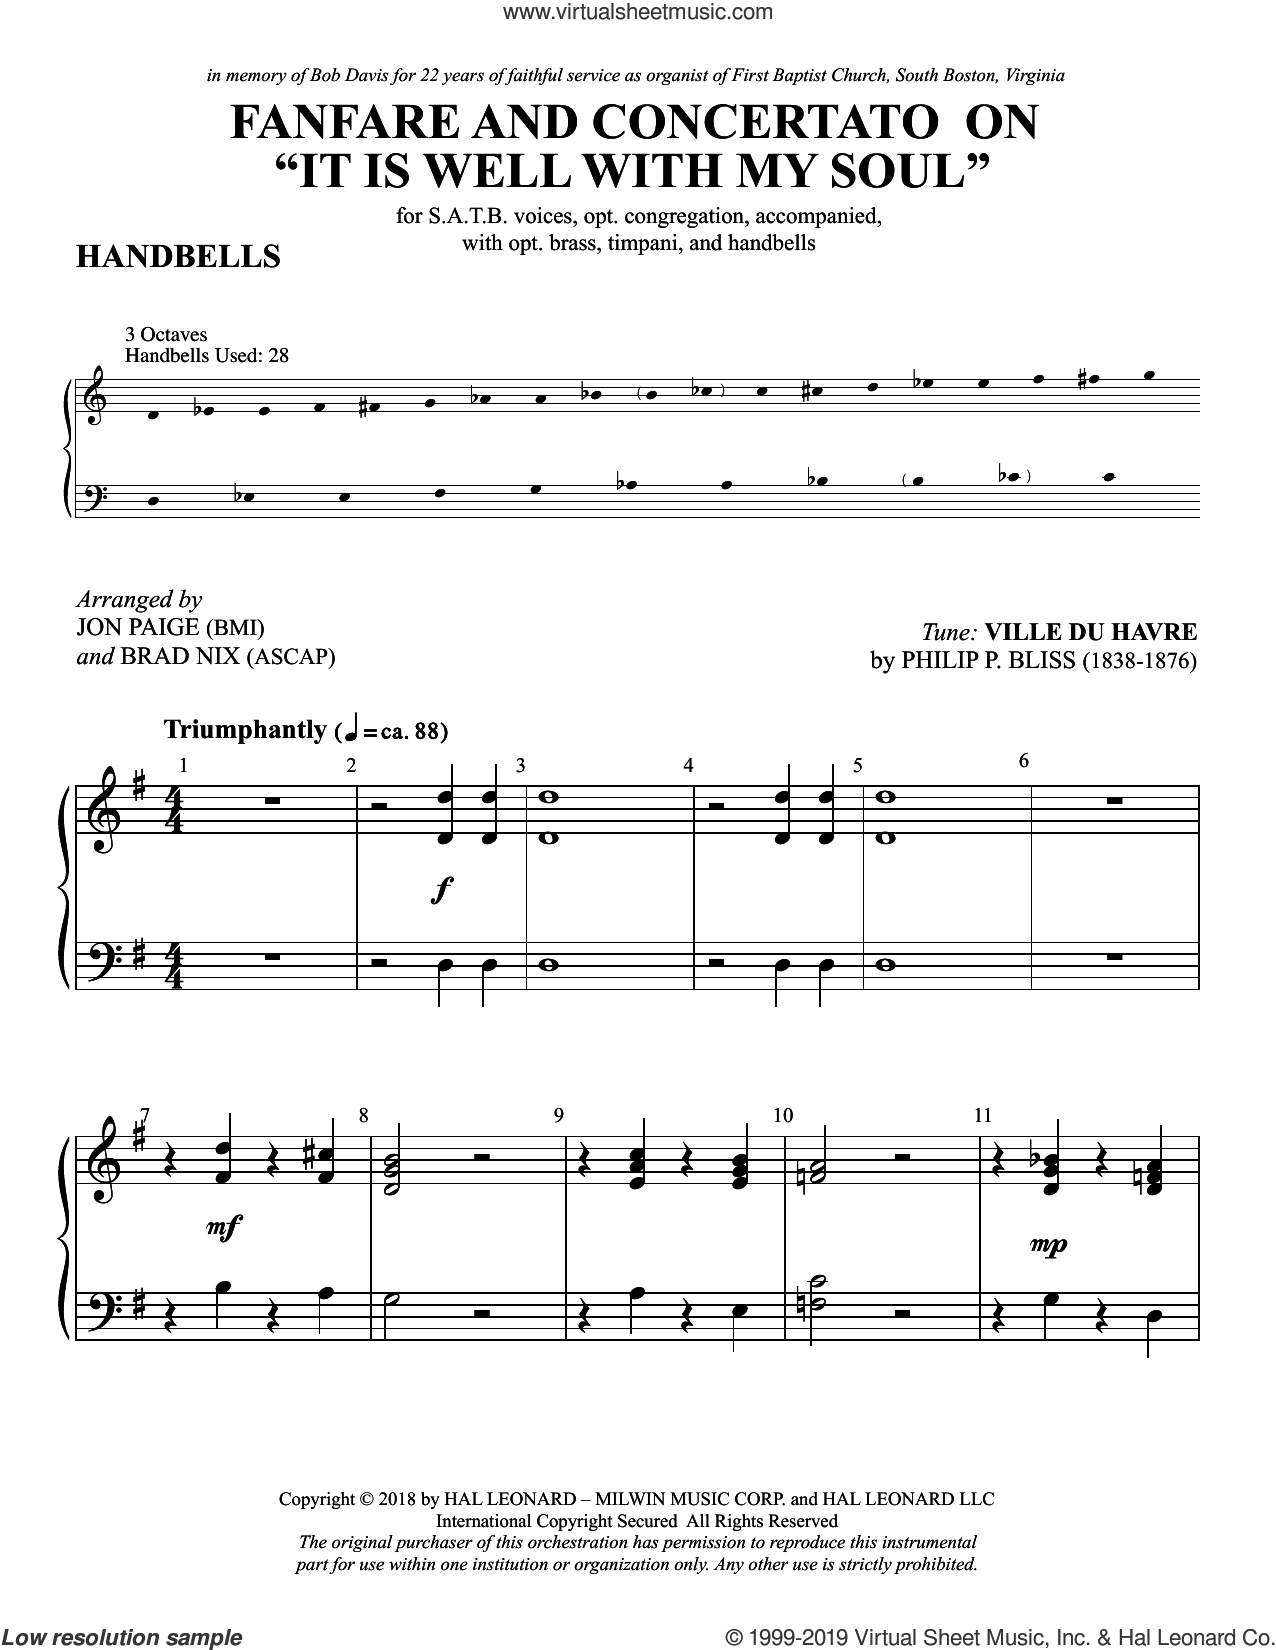 Fanfare and Concertato on 'It Is Well with My Soul' sheet music for orchestra/band (handbells) by Philip P. Bliss, Brad Nix, Jon Paige, Jon Paige & Brad Nix and Horatio Spafford, intermediate skill level